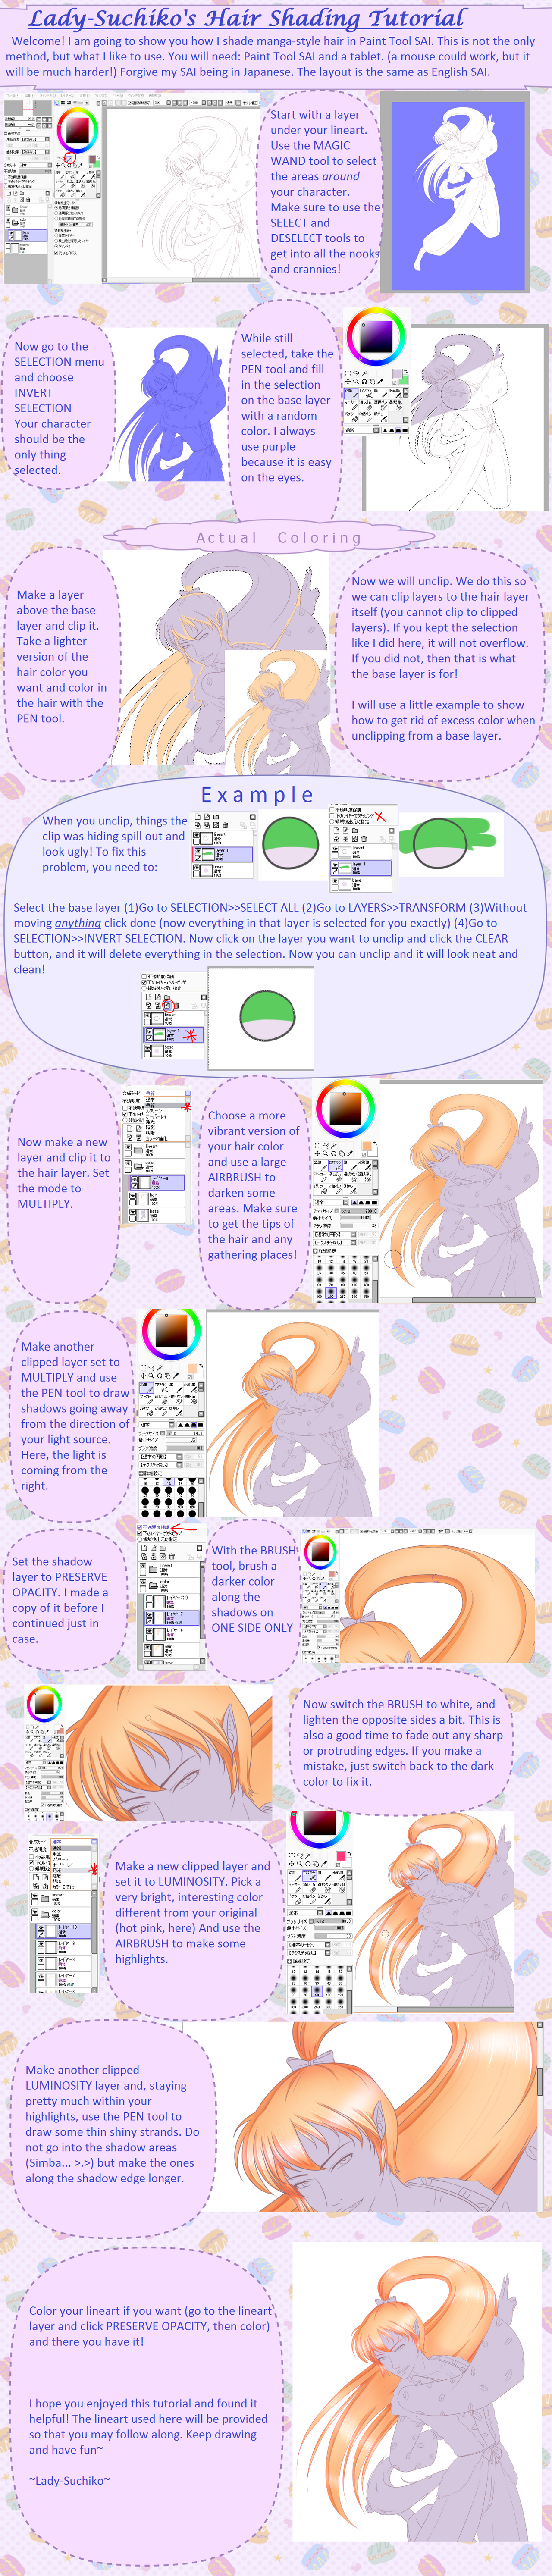 Hair Shading Tutorial (OUTDATED! *See new*) by Lady-Suchiko